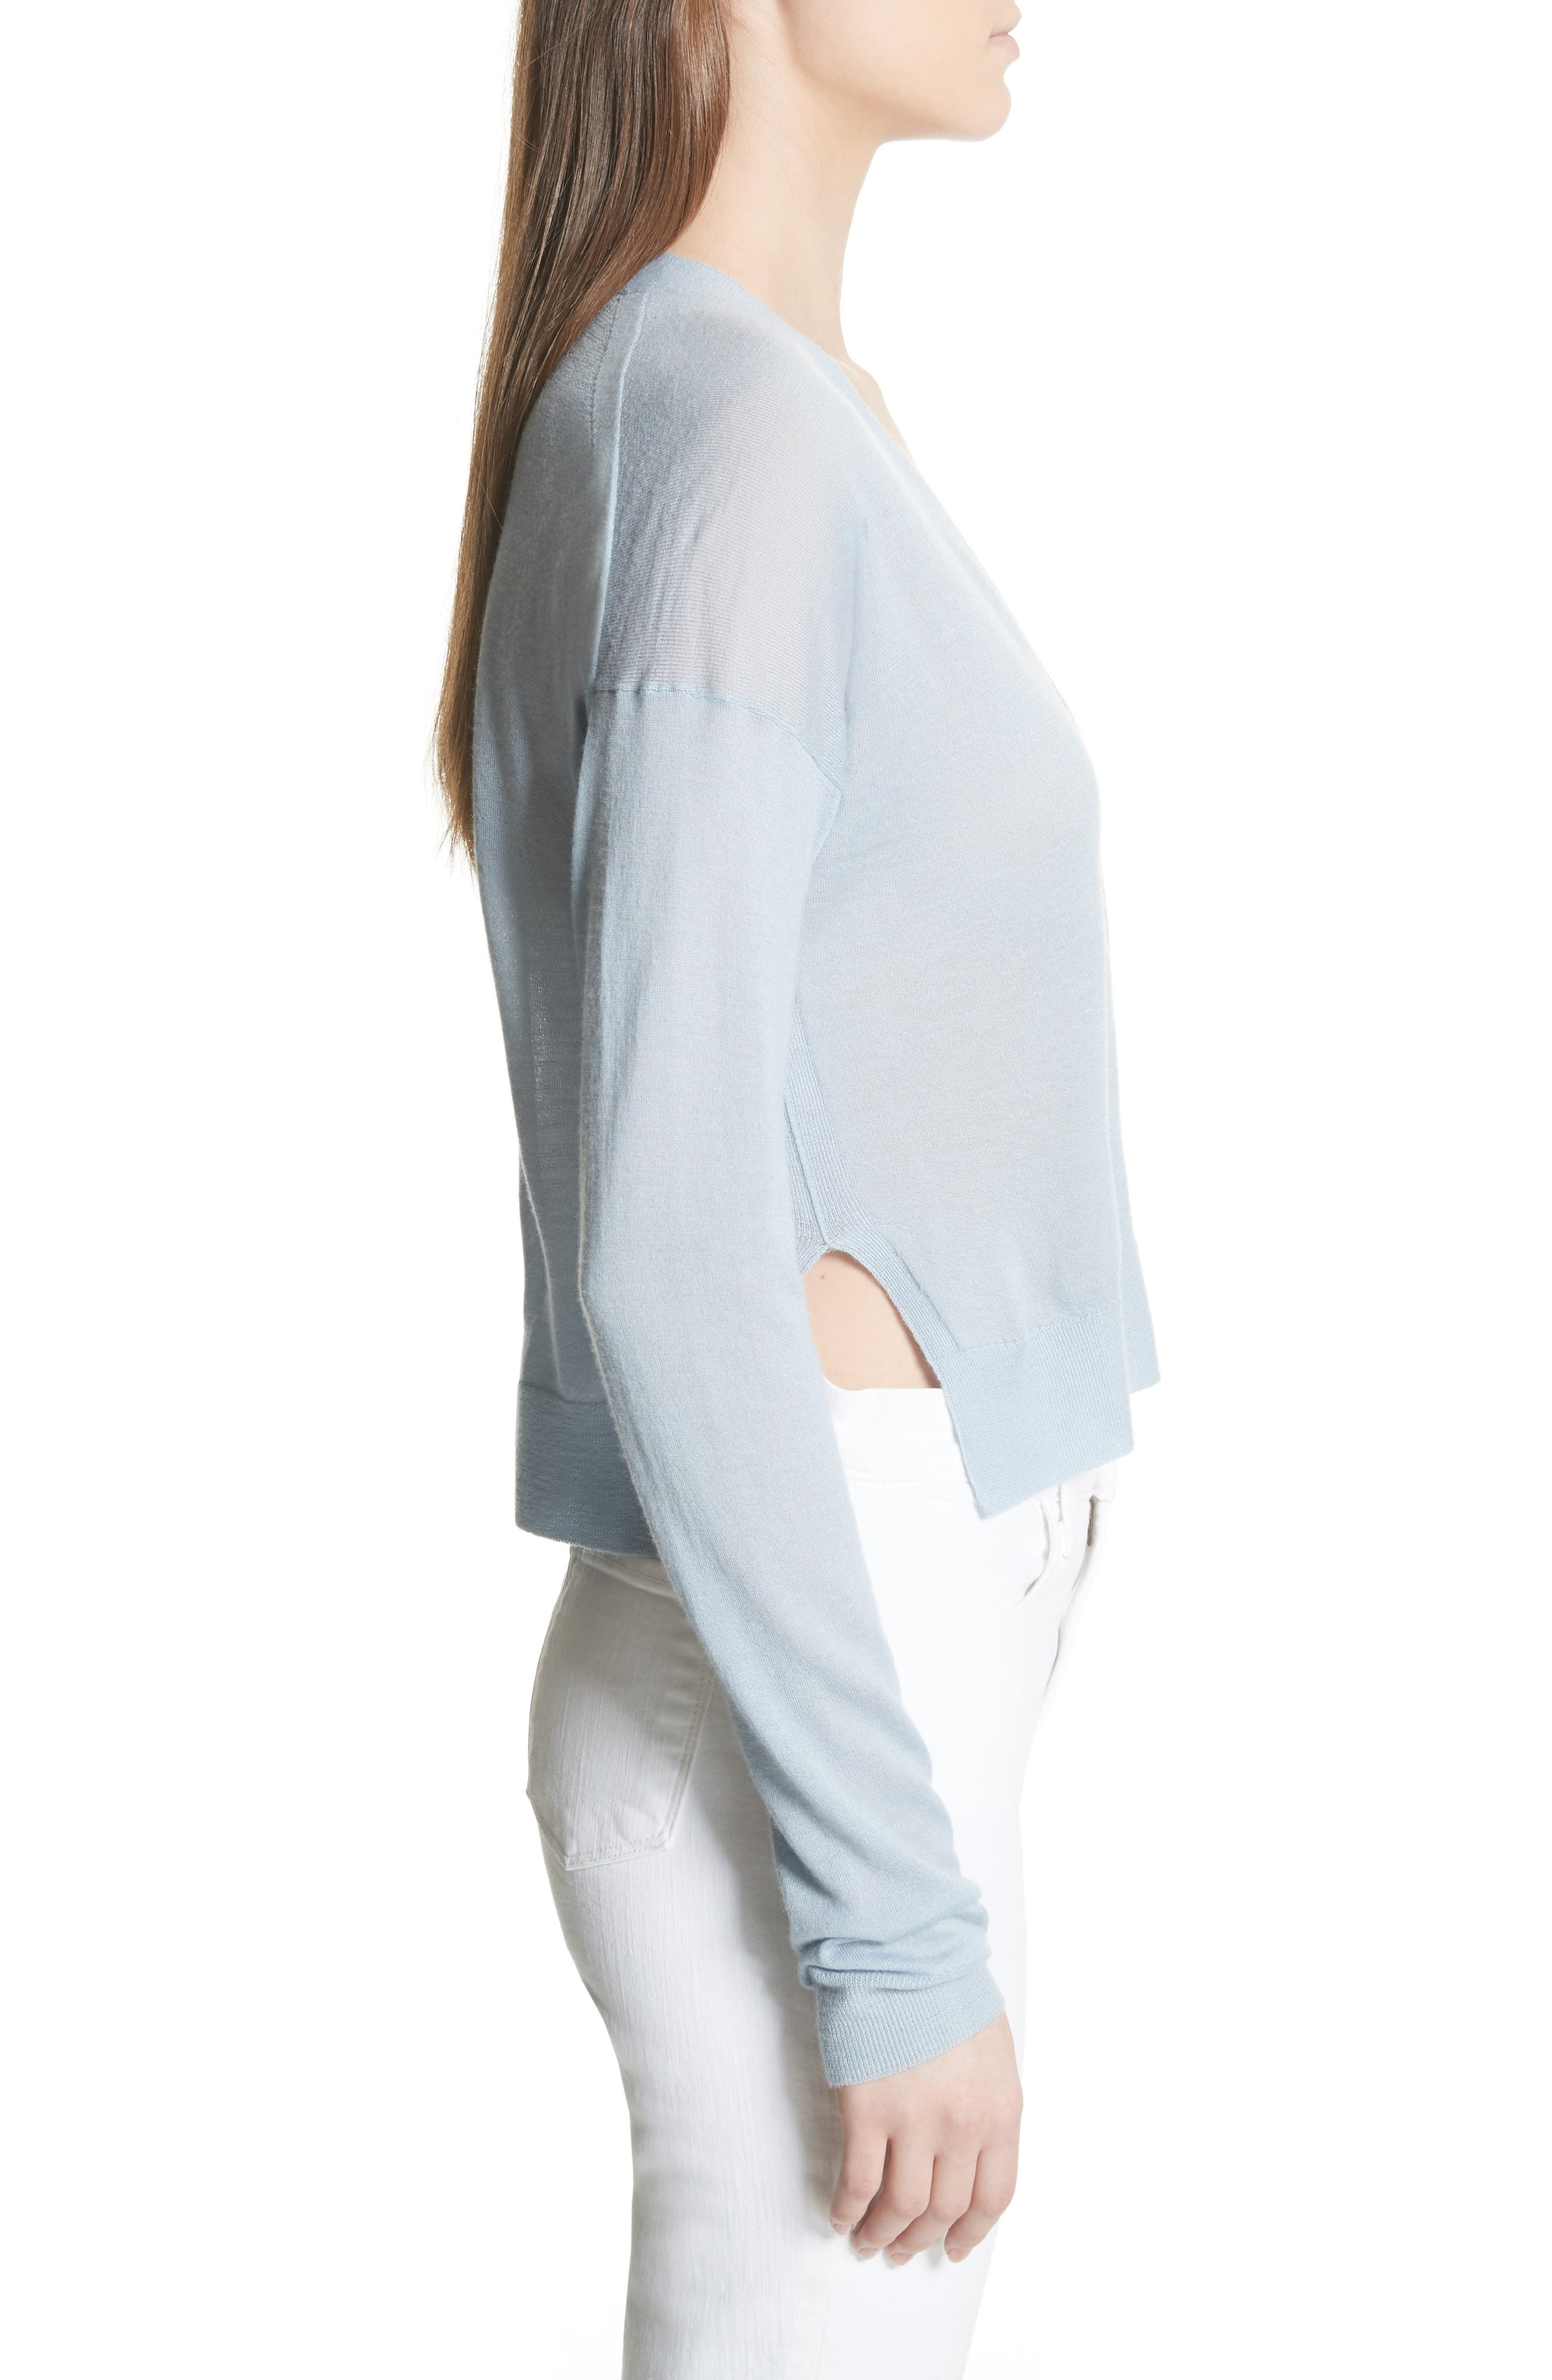 Hanelee Featherweight Cashmere Cardigan,                             Alternate thumbnail 3, color,                             489